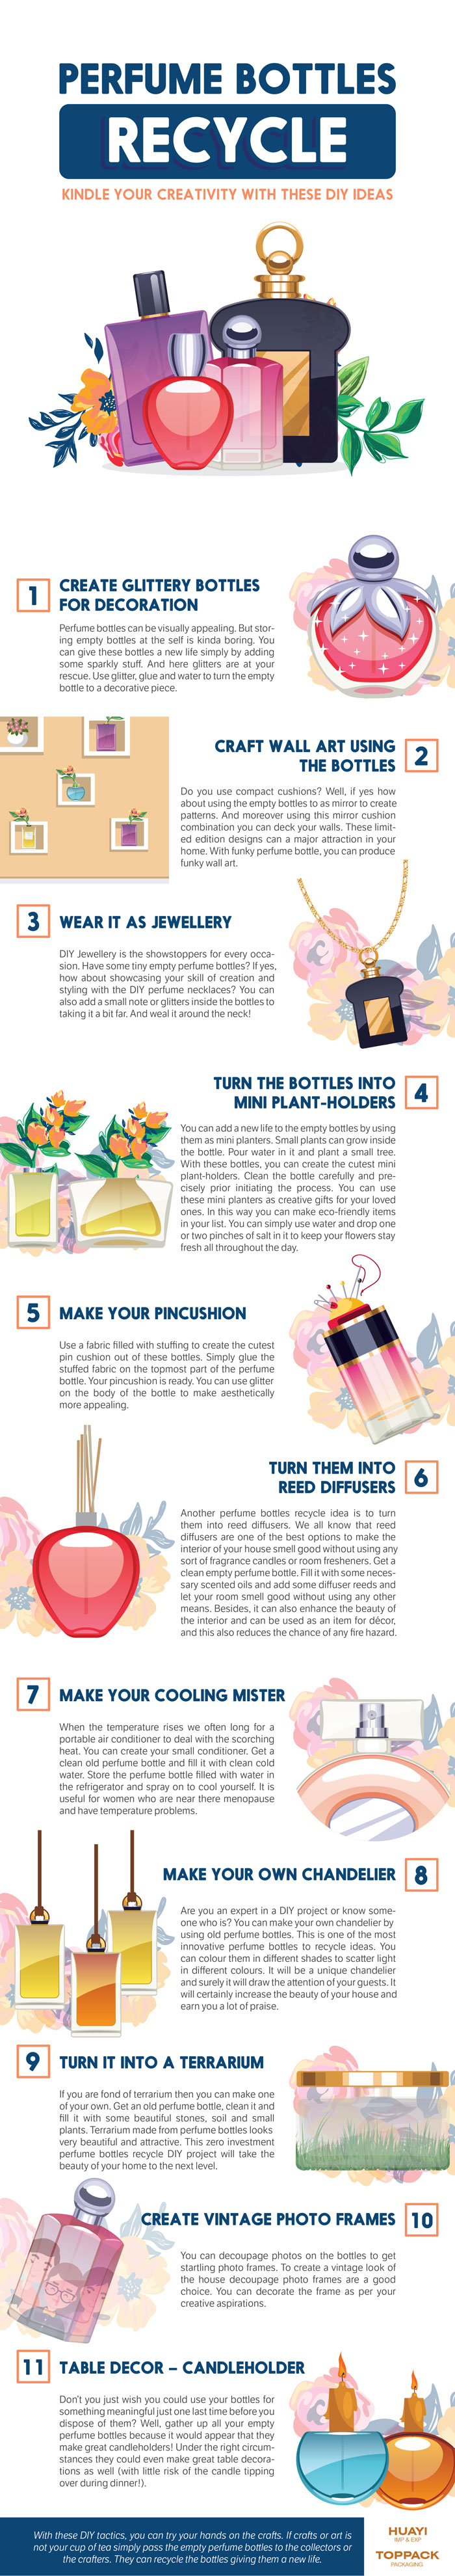 How to Recycle and Reuse Your Beautiful Perfume Bottles: 11 Fabulous DIY Ideas - Infographic